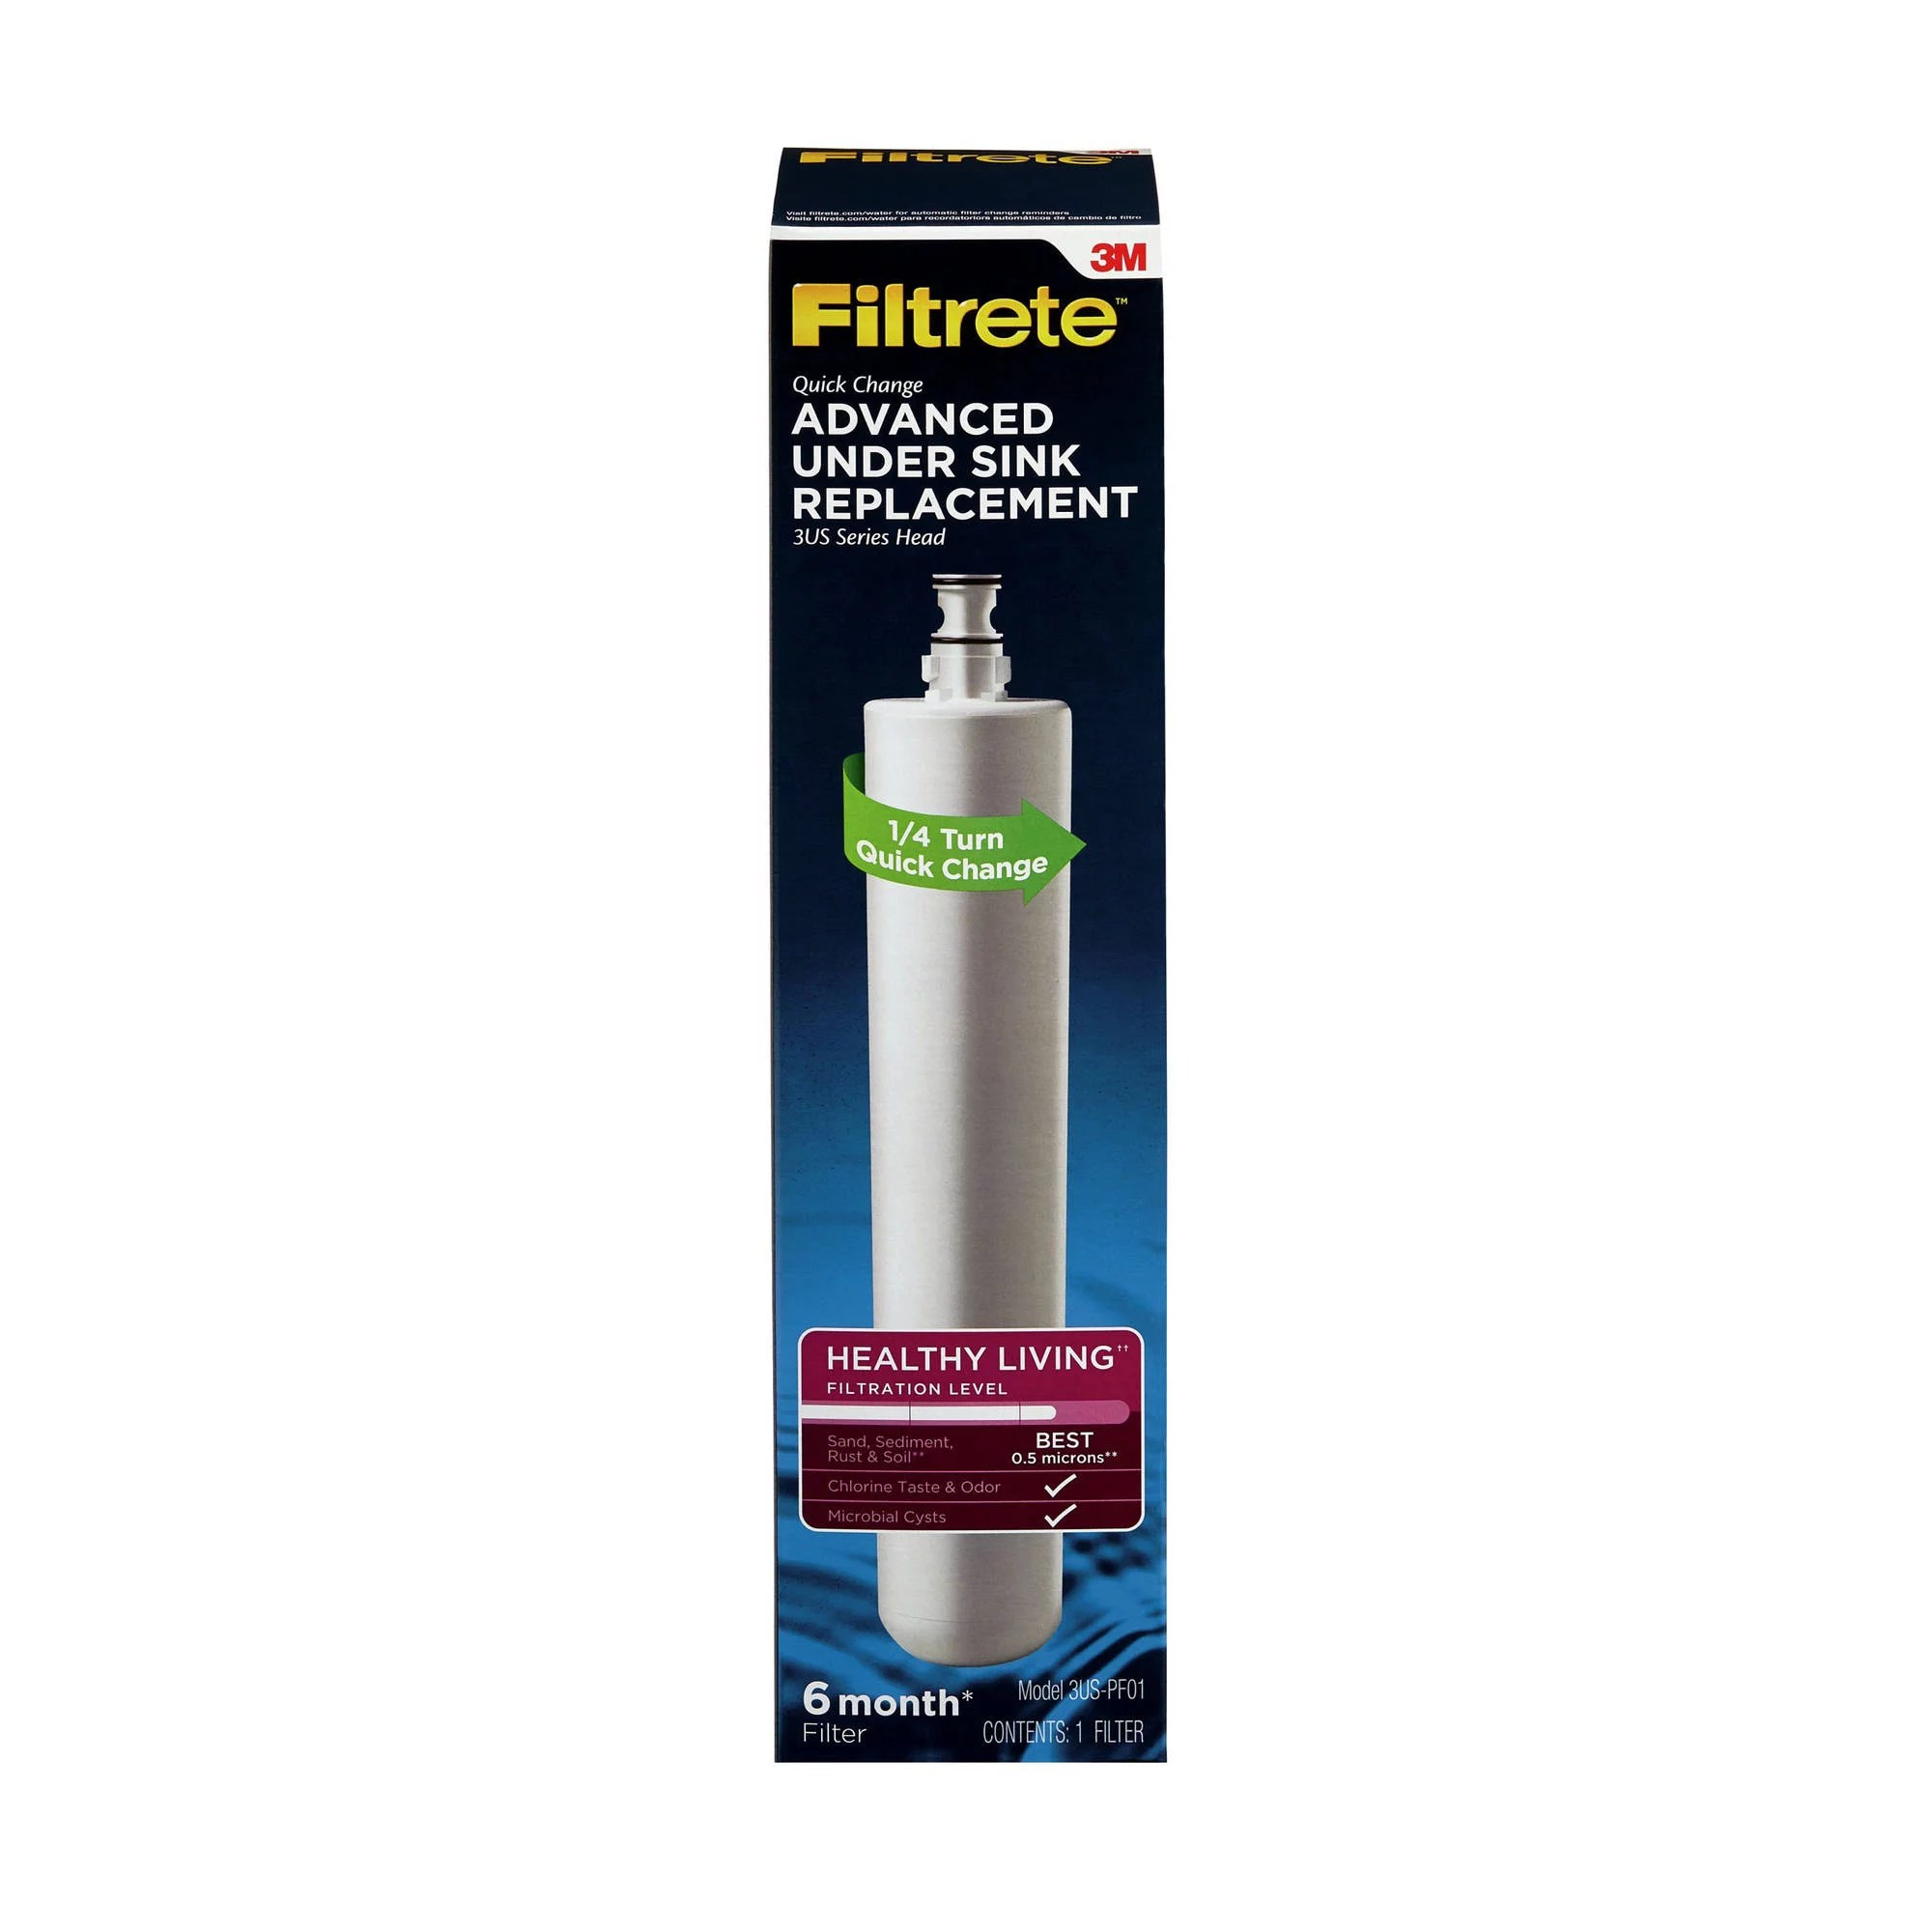 3M Filtrete UnderSink Advanced Replacement Water Filter